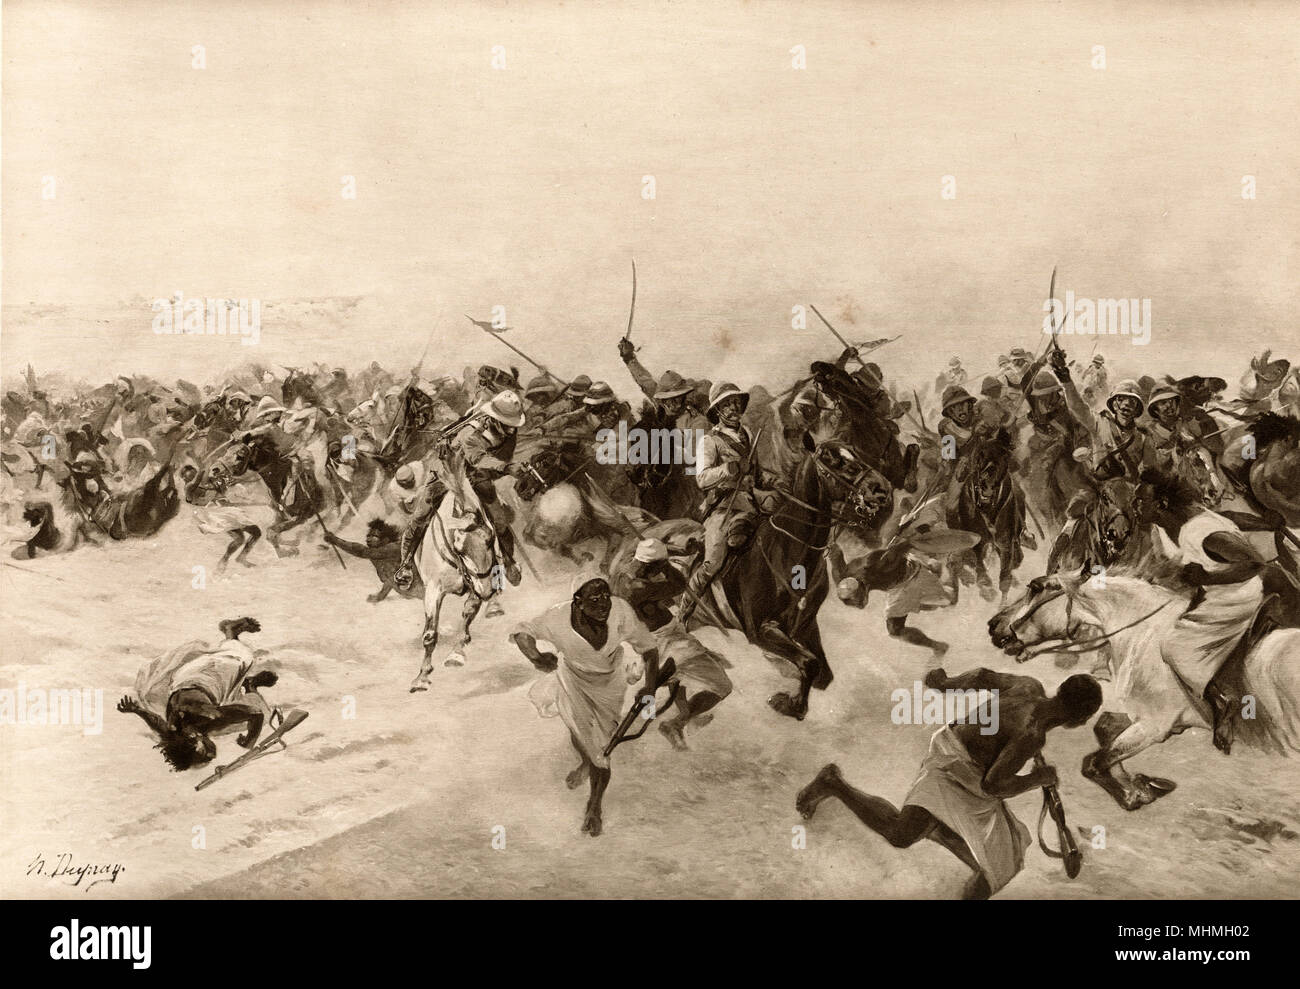 BATTLE OF OMDURMAN : the charge of the Lancers       Date: 2 September 1898 - Stock Image